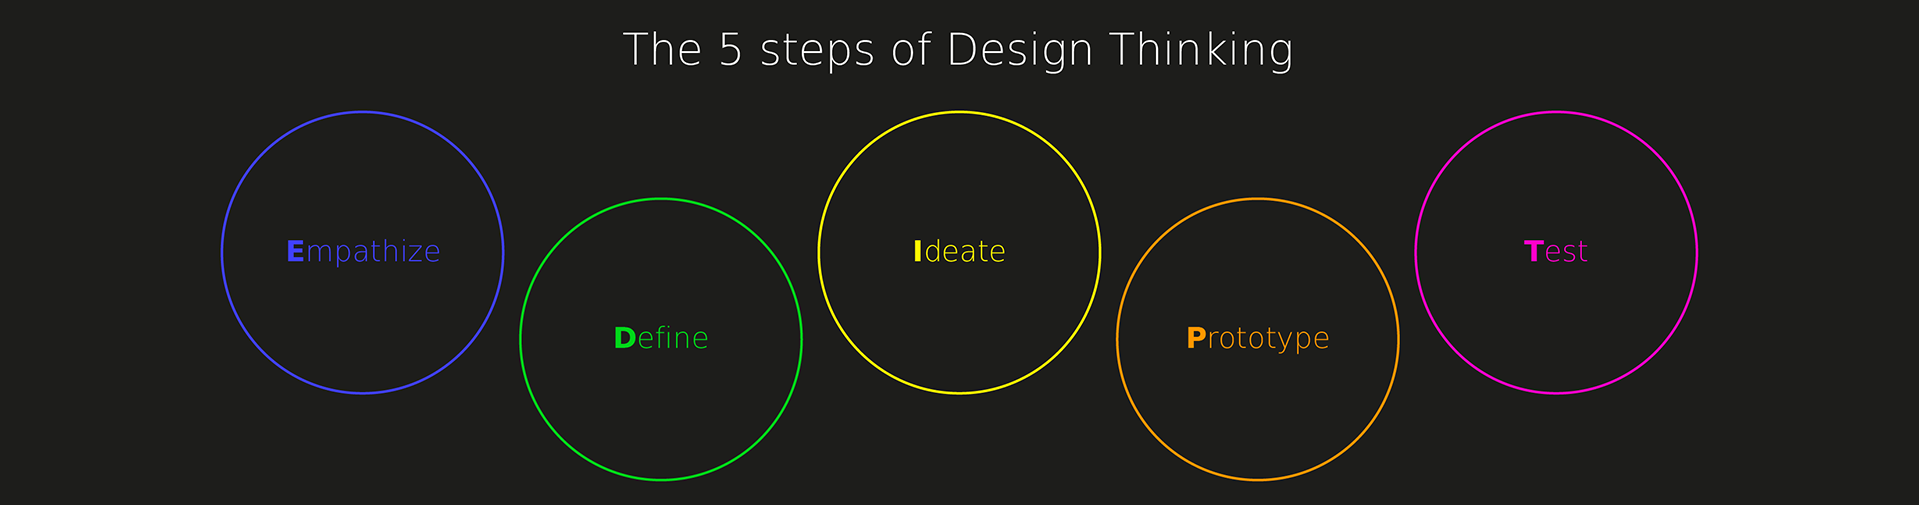 Design thinking process2